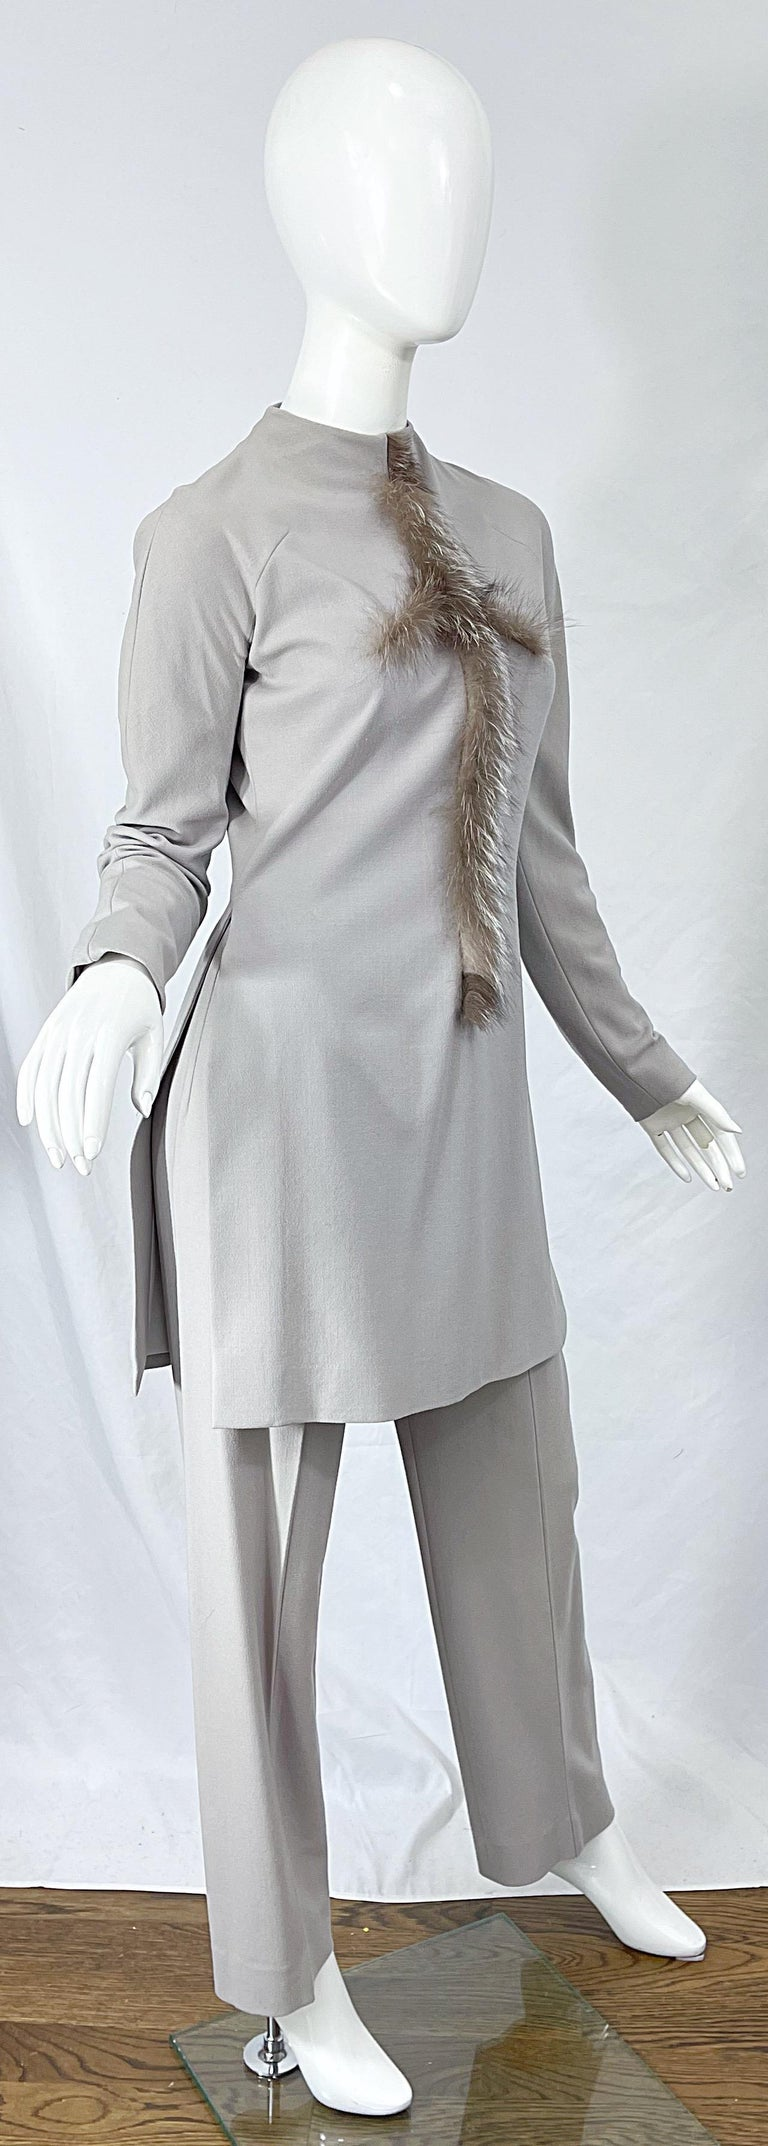 Givenchy Couture Alexander McQueen F/W 2003 Grey Runway Tunic + Slim Pants For Sale 3